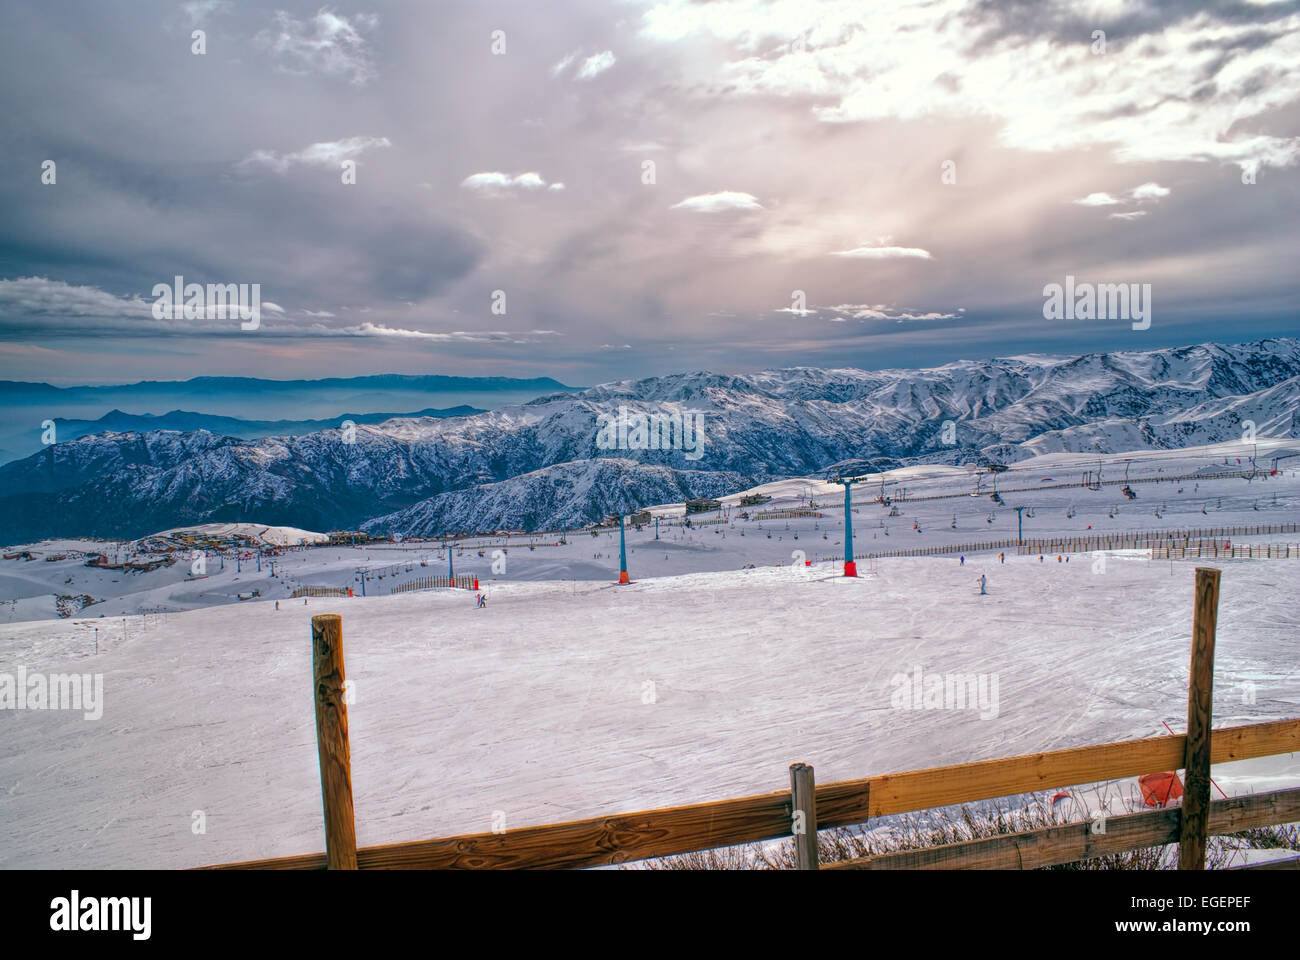 Picturesque view of piste in Valle Nevado under gloomy grey sky - Stock Image